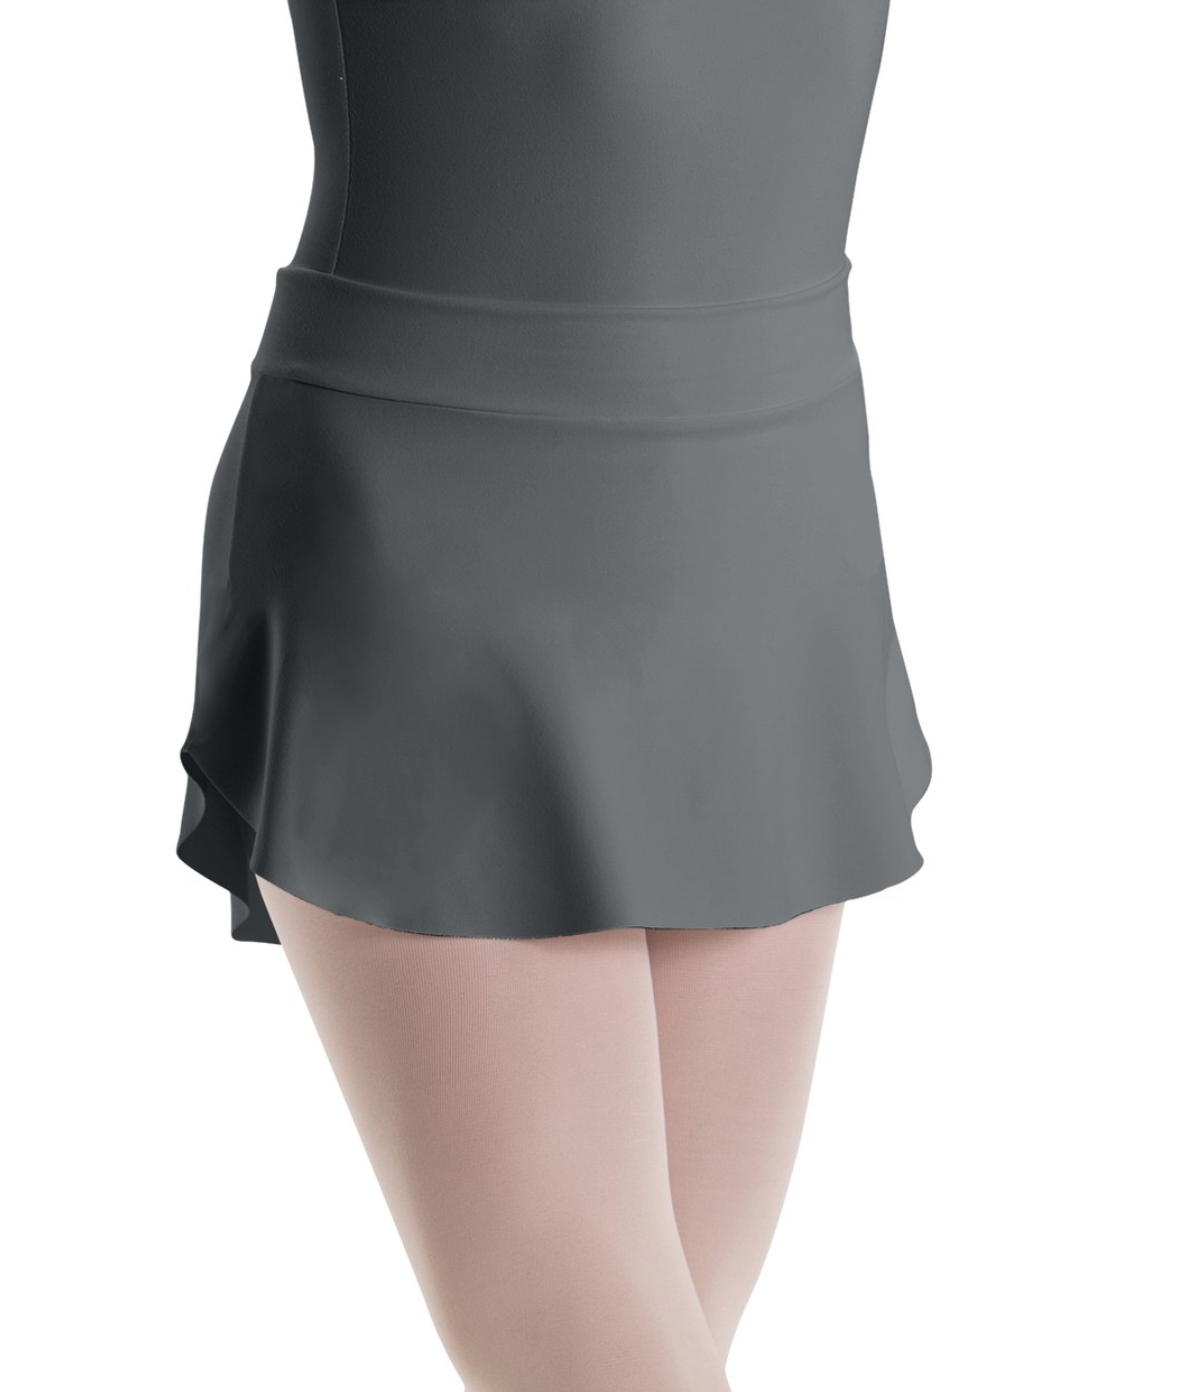 Motionwear Hi-Lo Skirt - 1236